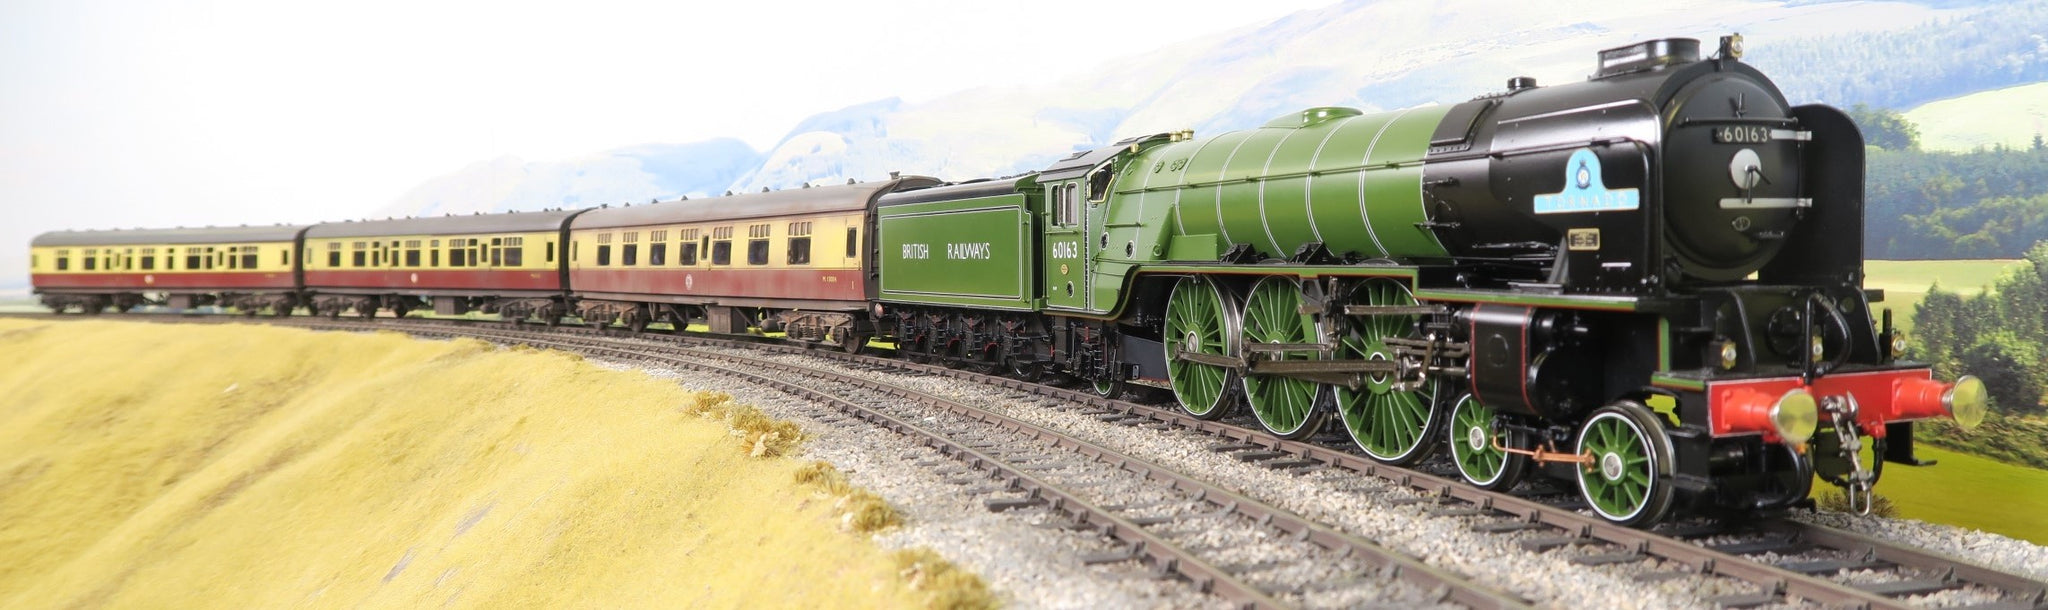 Golden Age Models 7mm Finescale O Gauge BR A1 Apple Green #3 Type '60163' 'Tornado' DCC Sound!